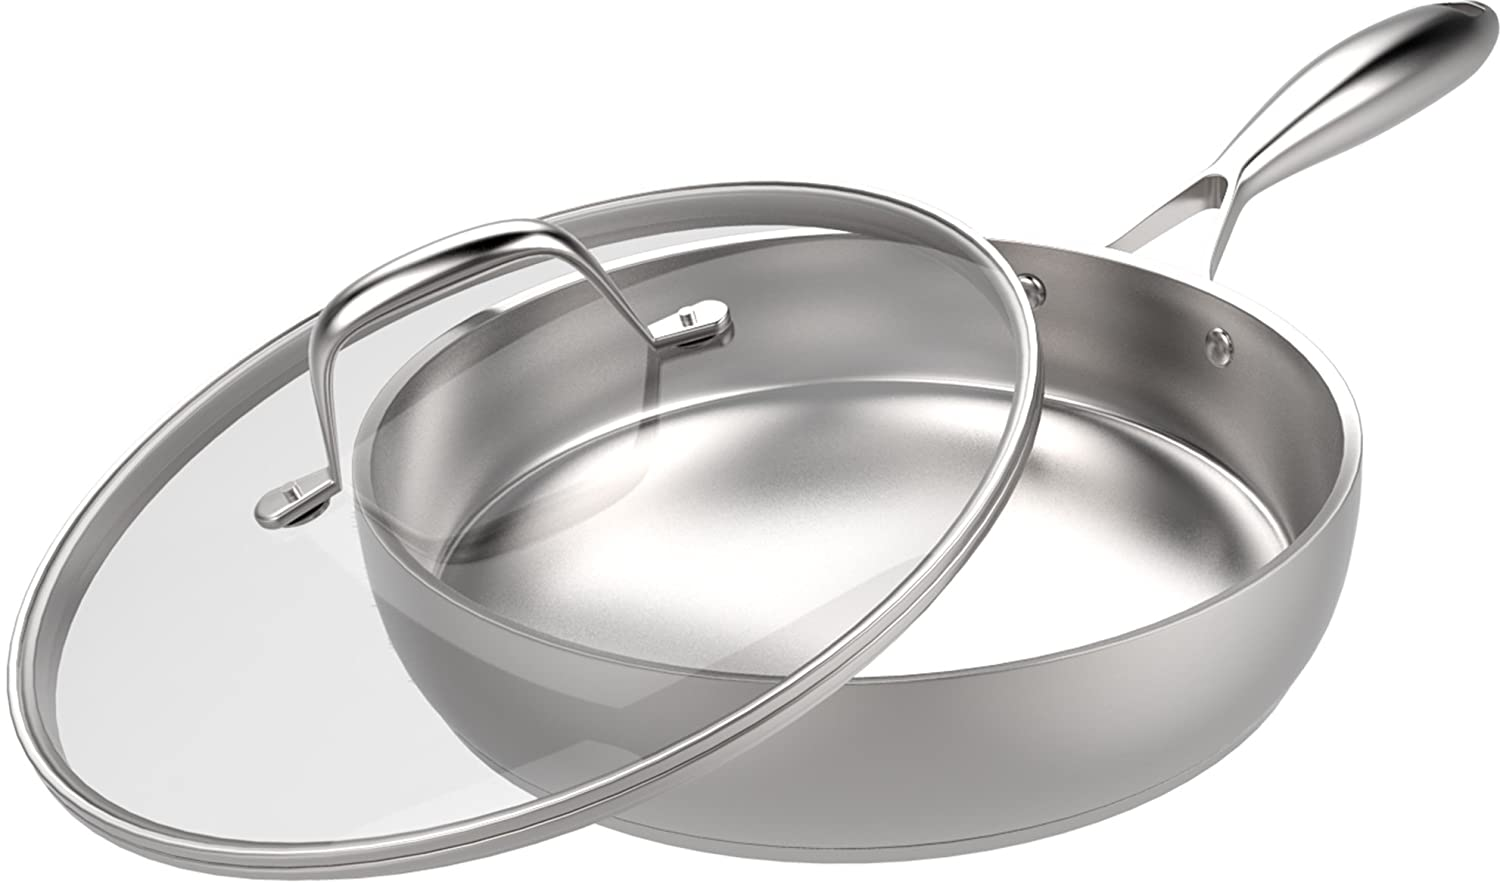 Stainless Steel Skillet with Glass Cover - 12 Inch - Premium Quality - 30 x 6.8 cm - Multipurpose Use for Home Kitchen or Restaurant - Chef's Choice by Utopia Kithcen Utopia Kitchen UK0158